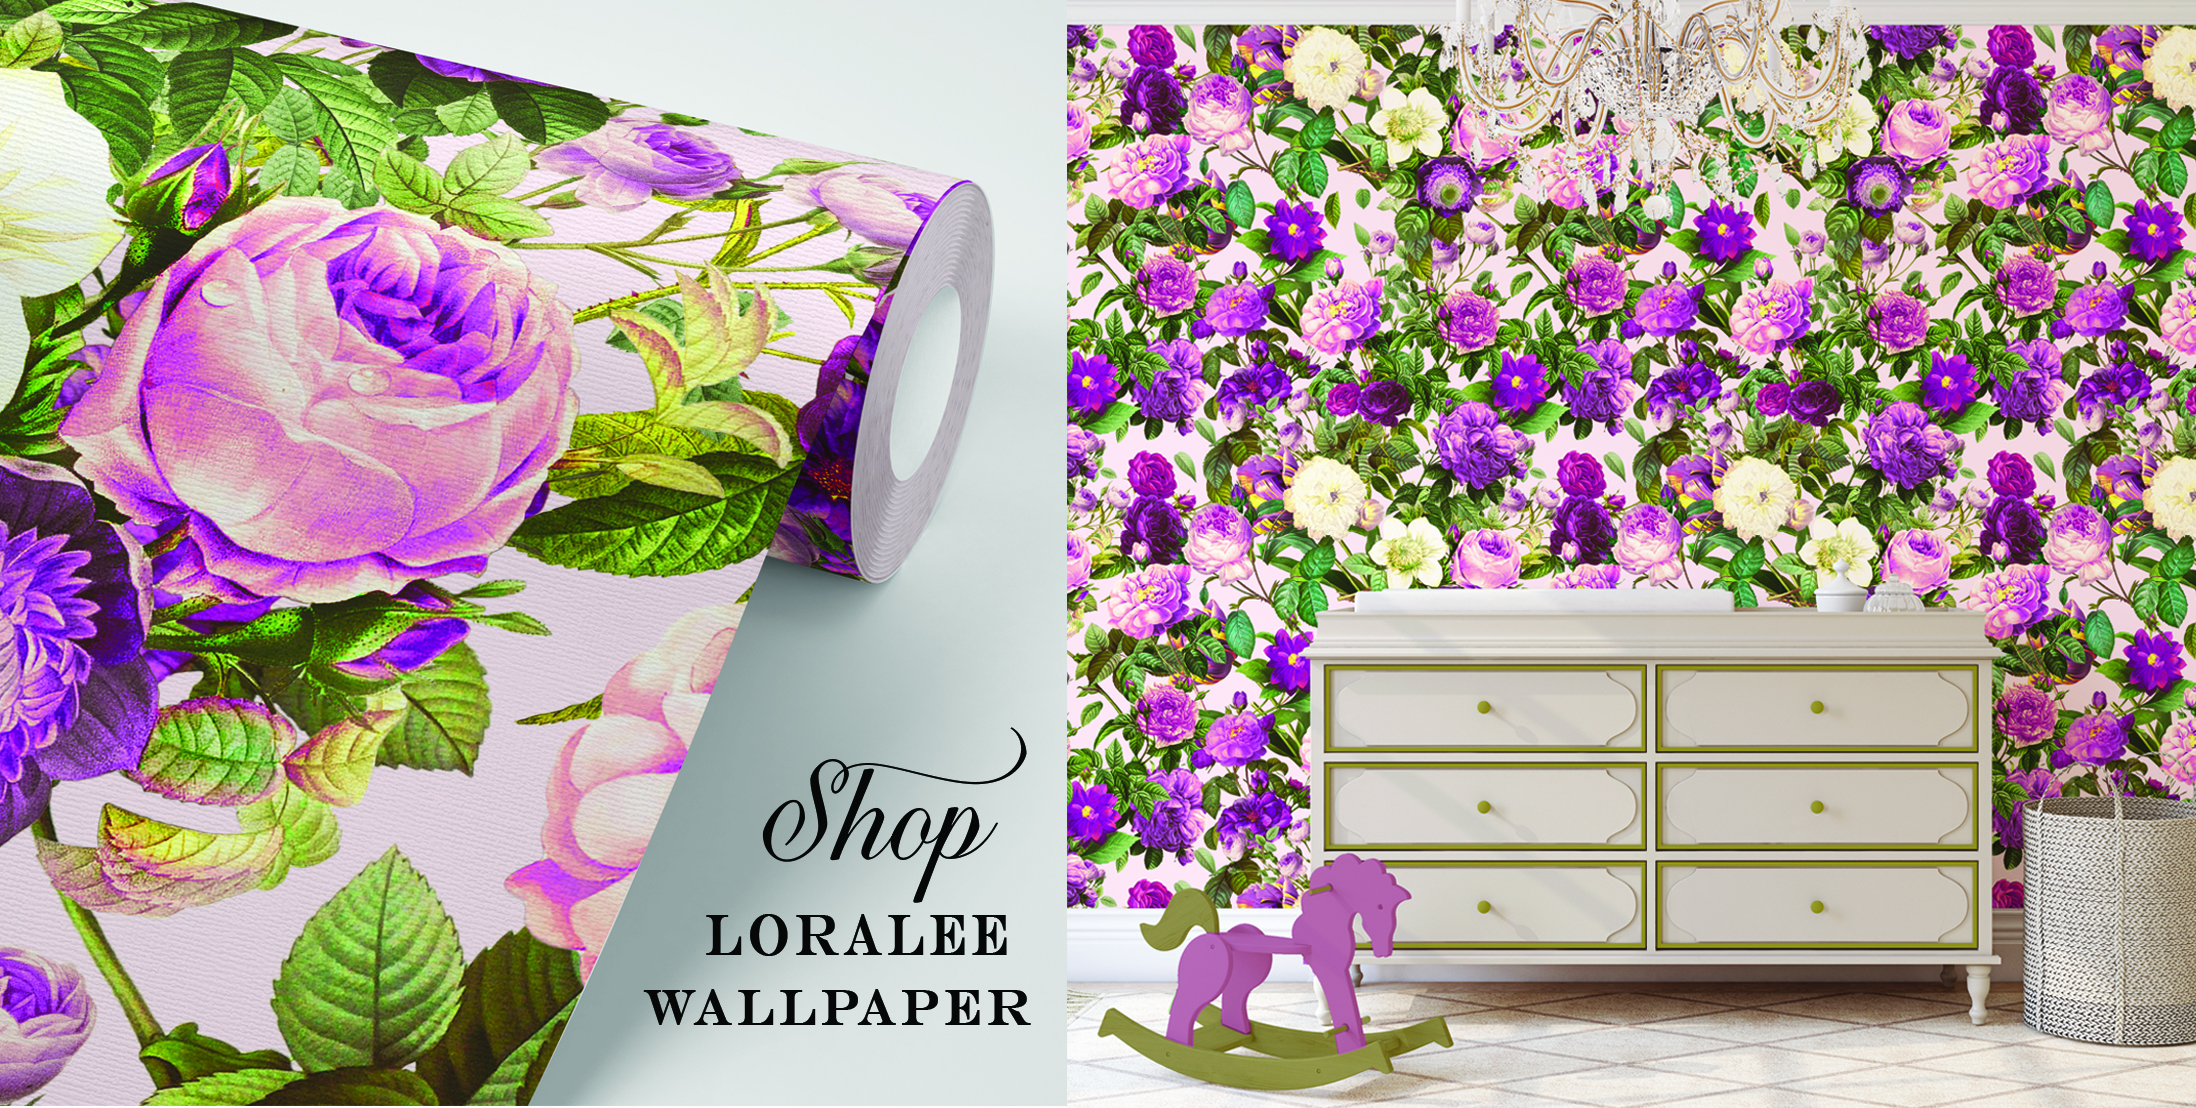 Shop Wallpaper